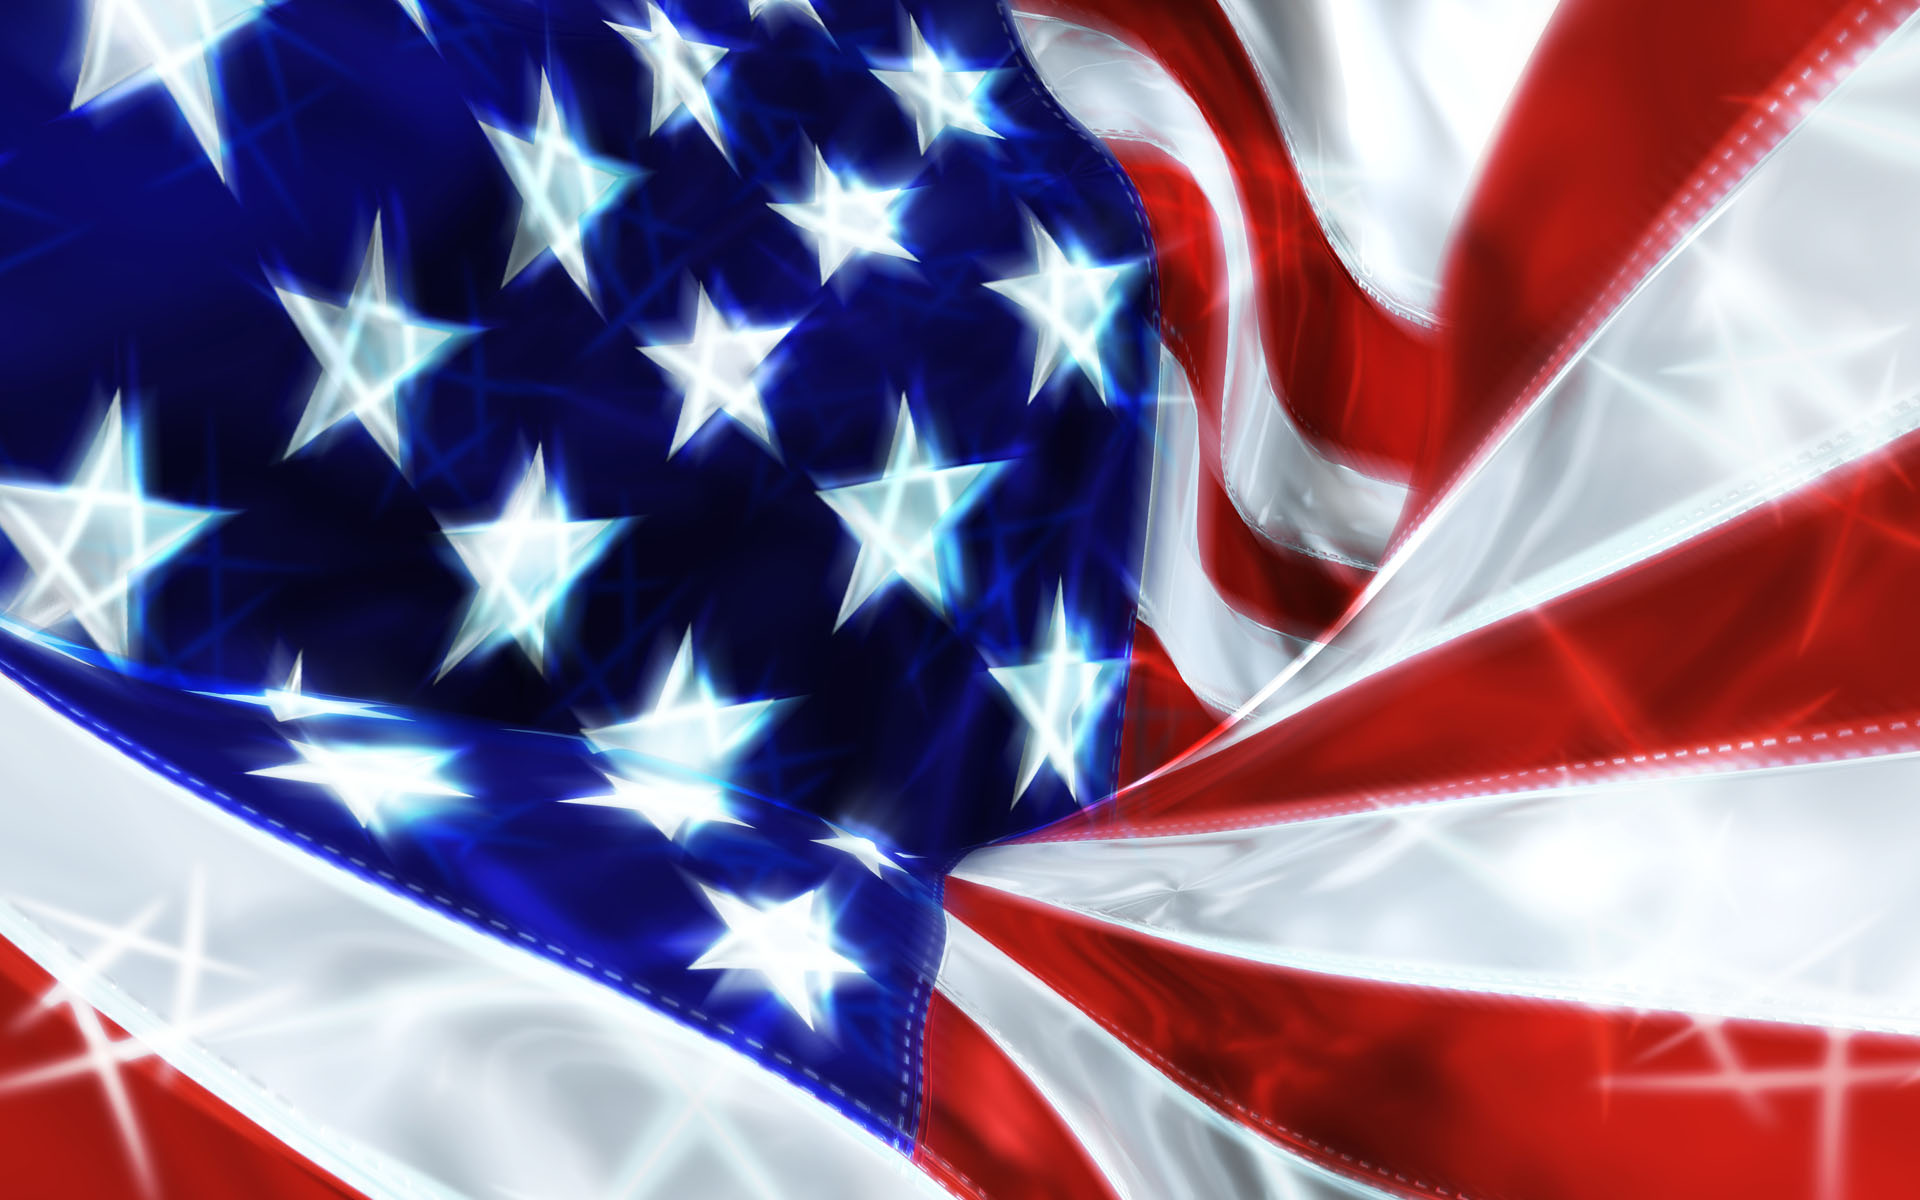 Hd wallpaper usa flag - Name American Flag Fantasy Wallpaper Widescreen Hd Wallpapers